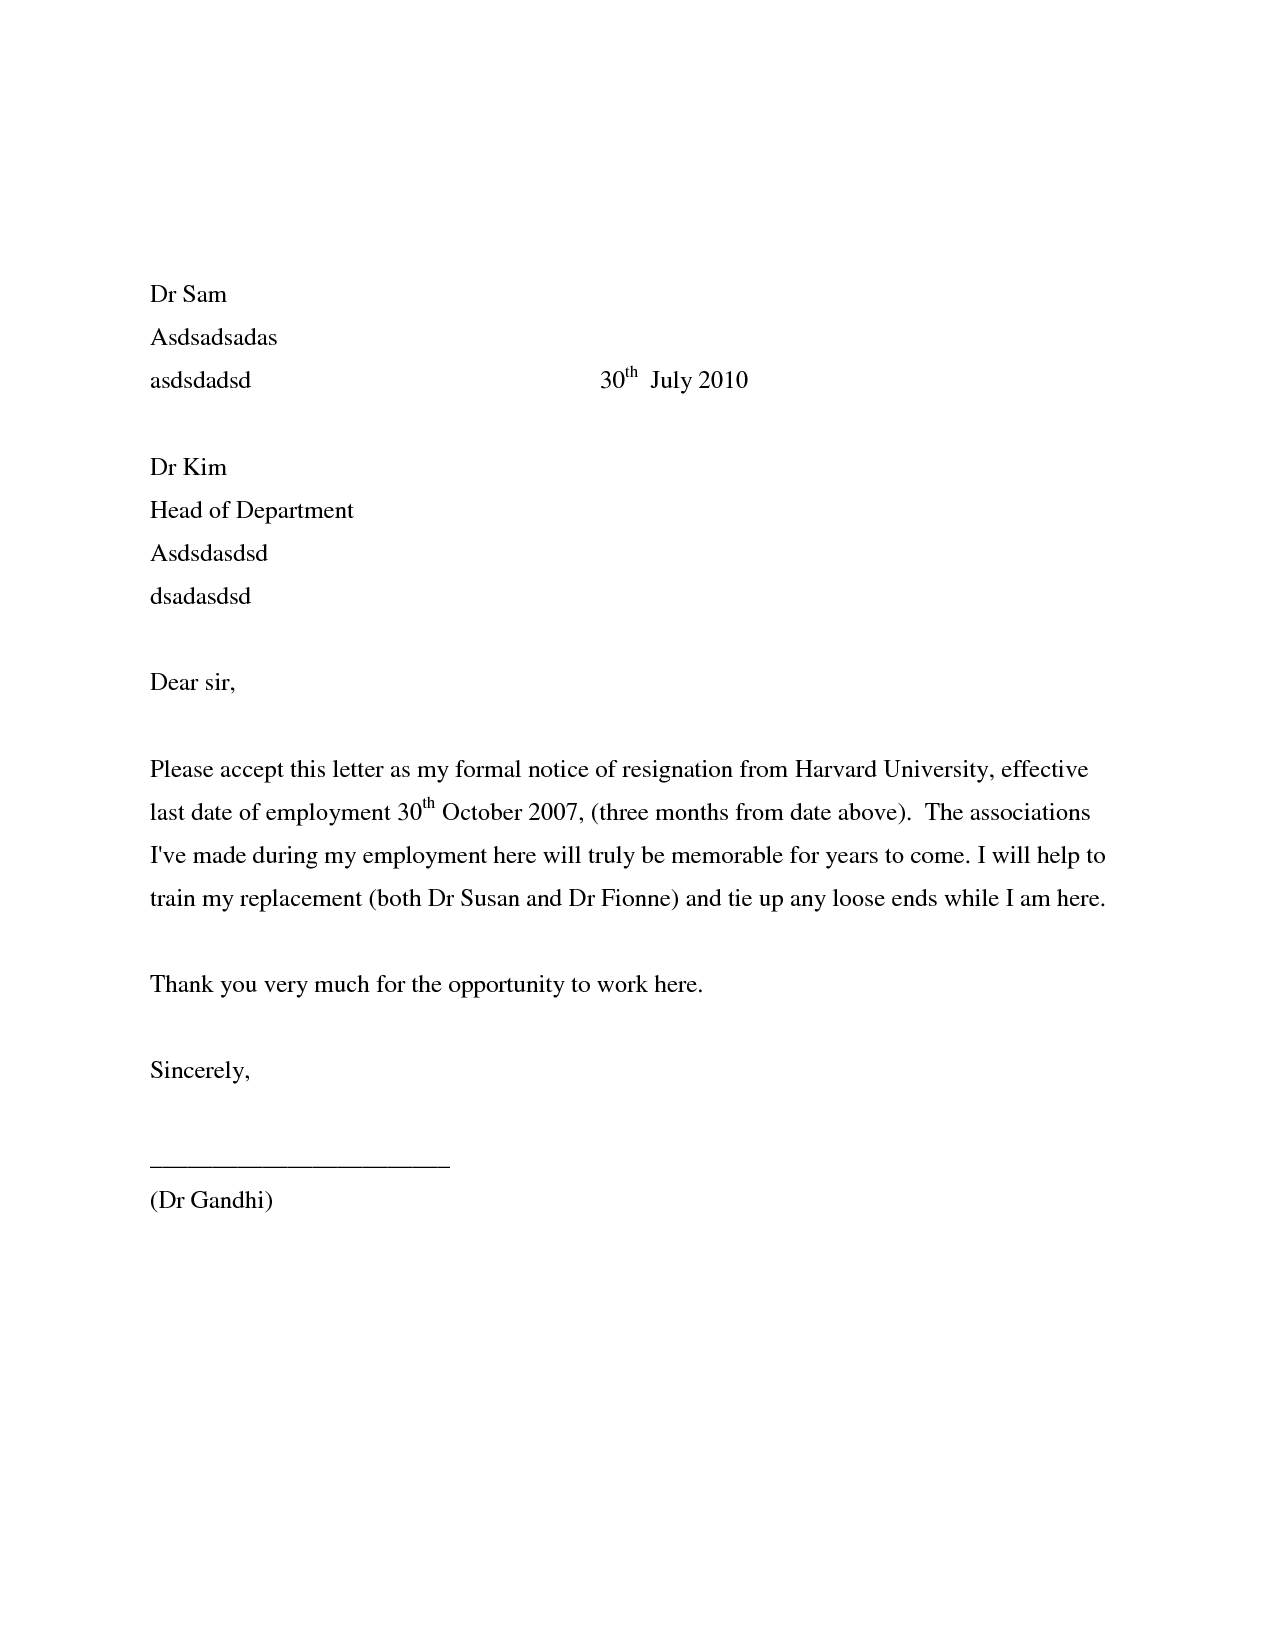 Simple resignation letters examples seeabruzzowriting a letter of simple resignation letters examples seeabruzzowriting a letter of resignation email letter sample expocarfo Images